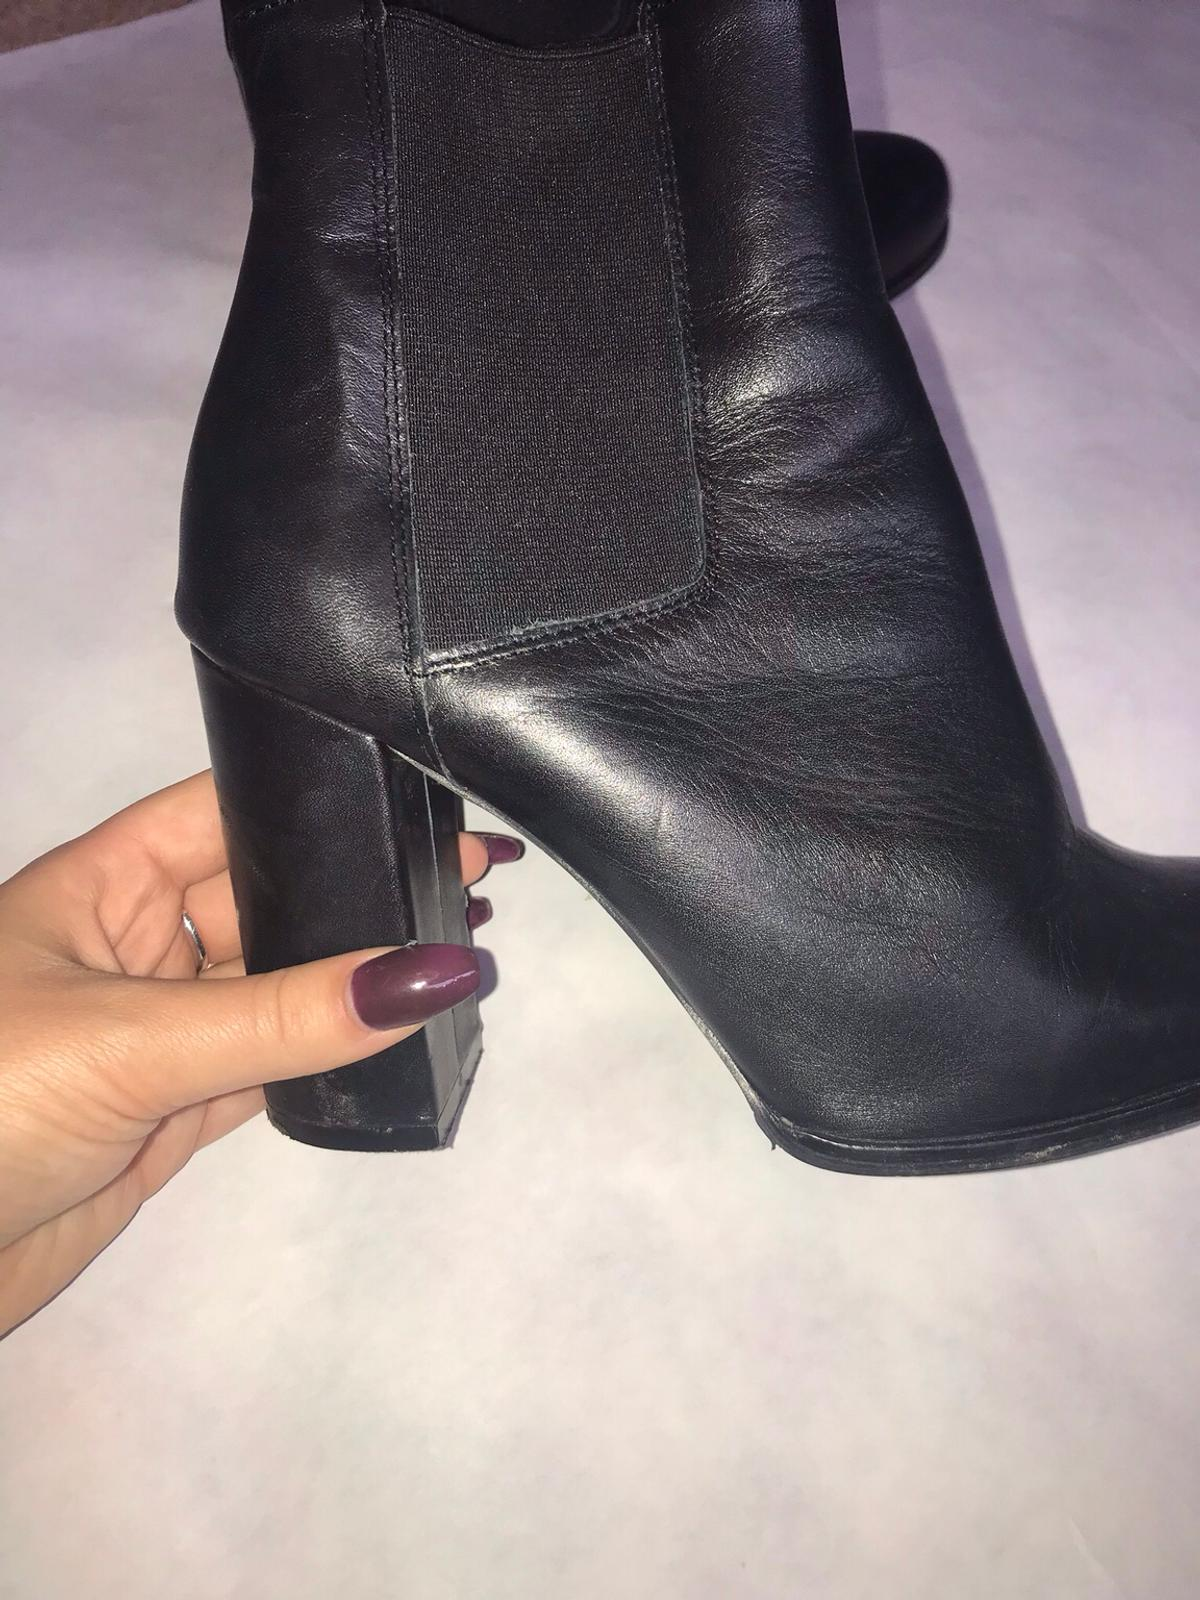 River Island black ankle boots in TS9